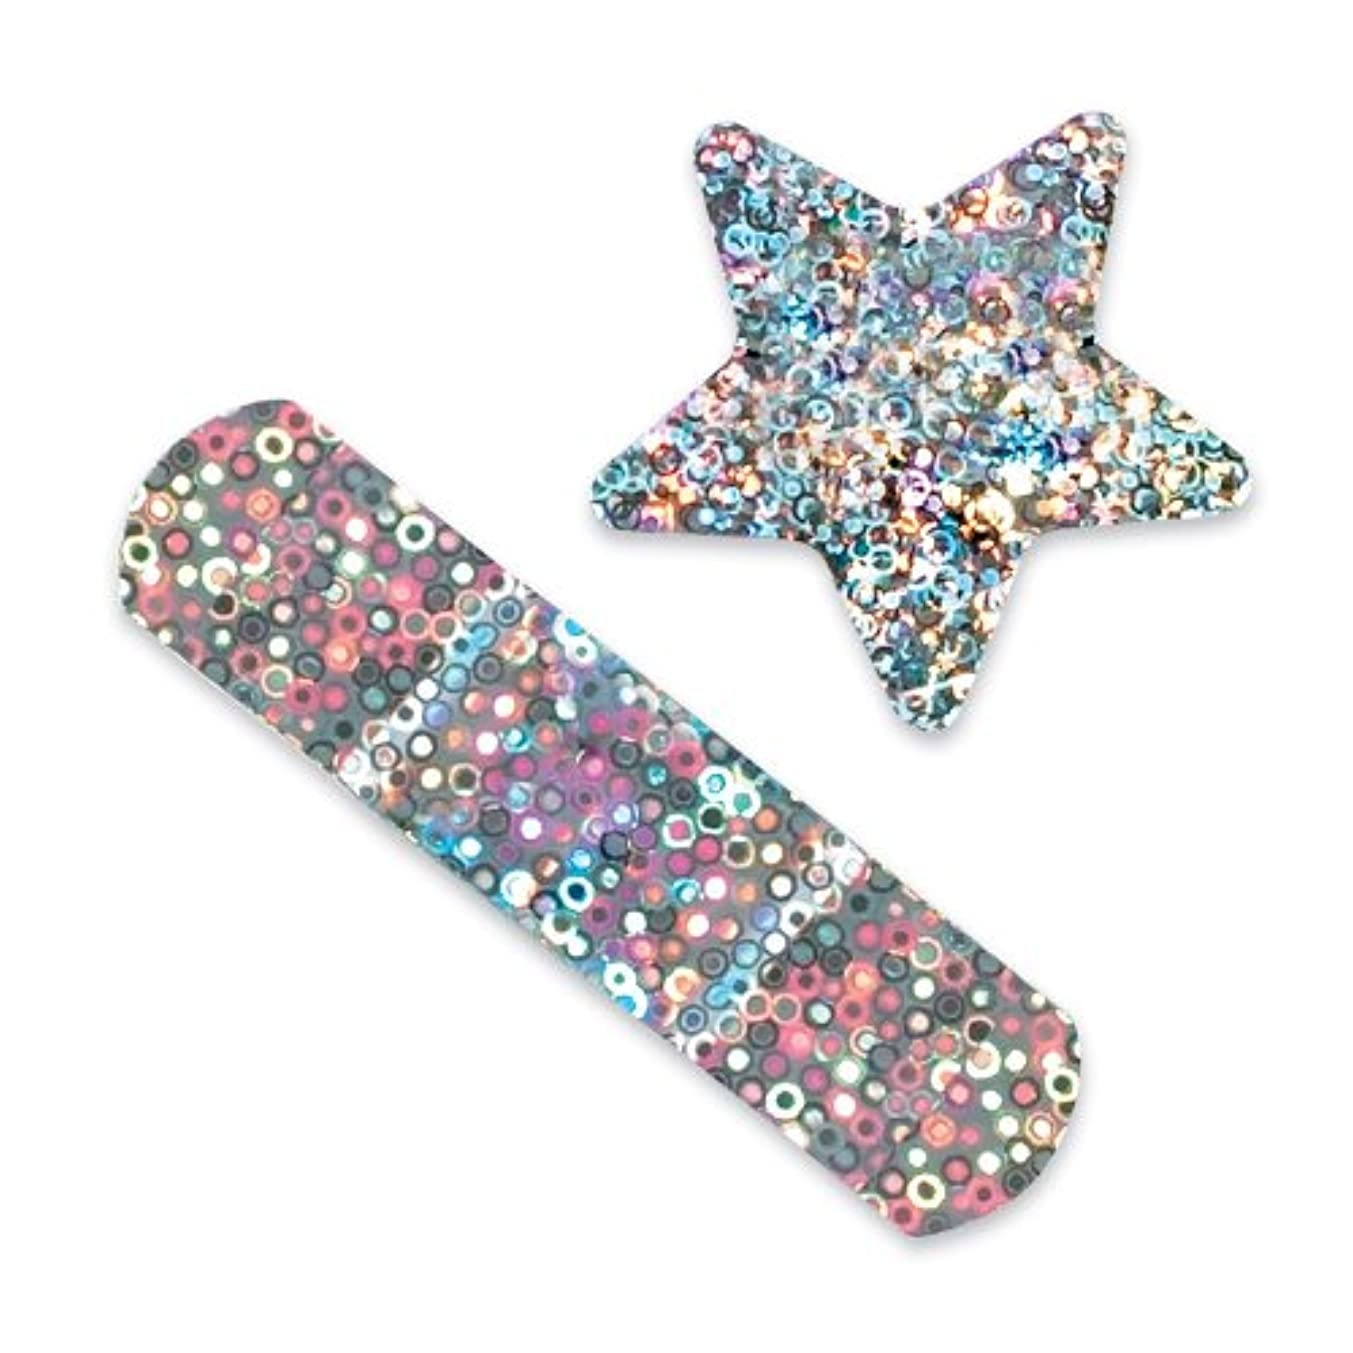 Glitter Stars and Strips Bandages - 100 per Pack